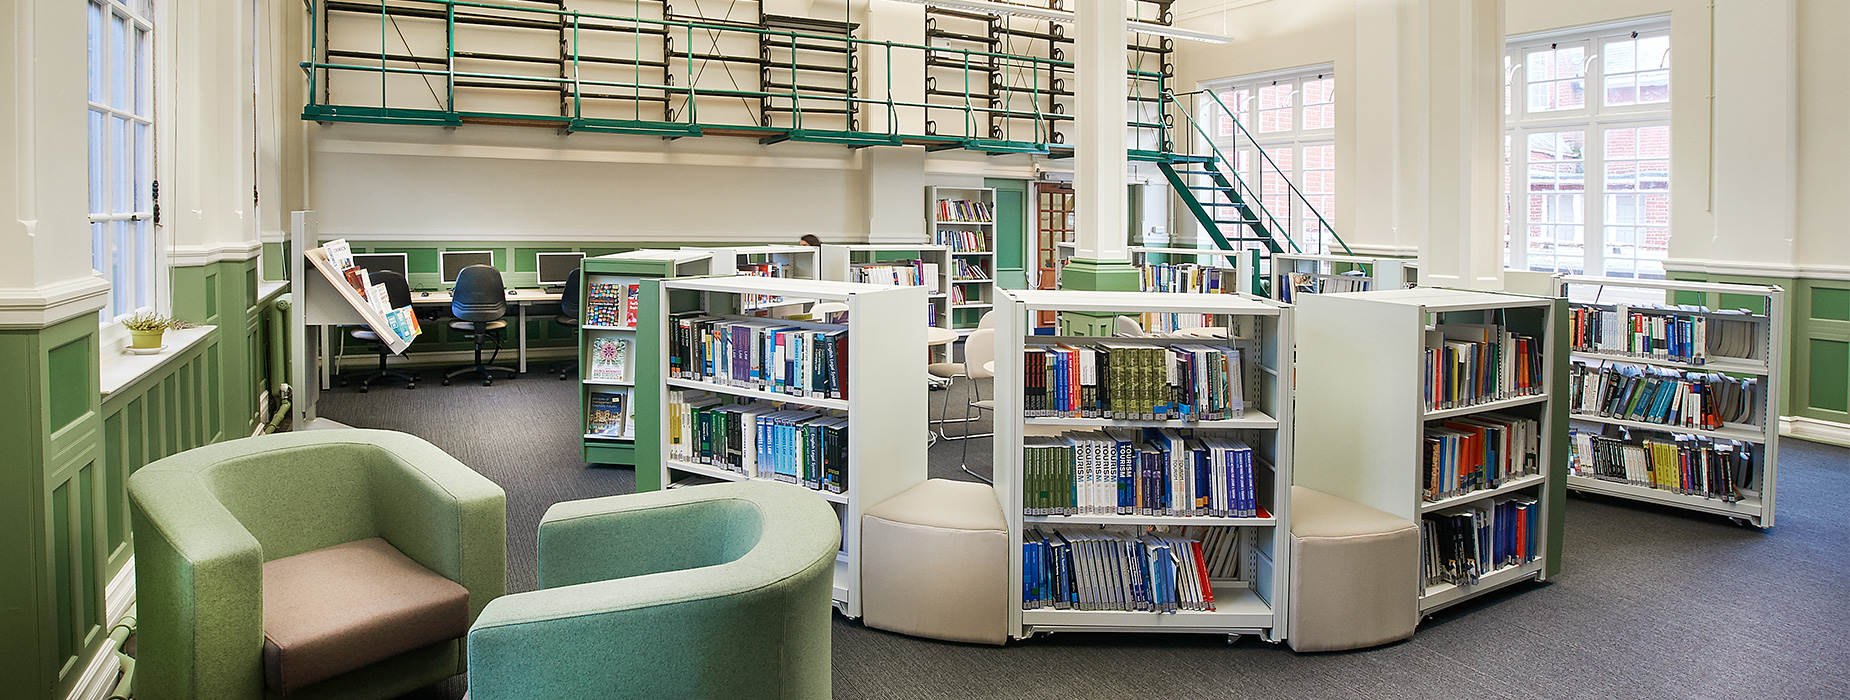 An image for Secondary Schools & Colleges libraries